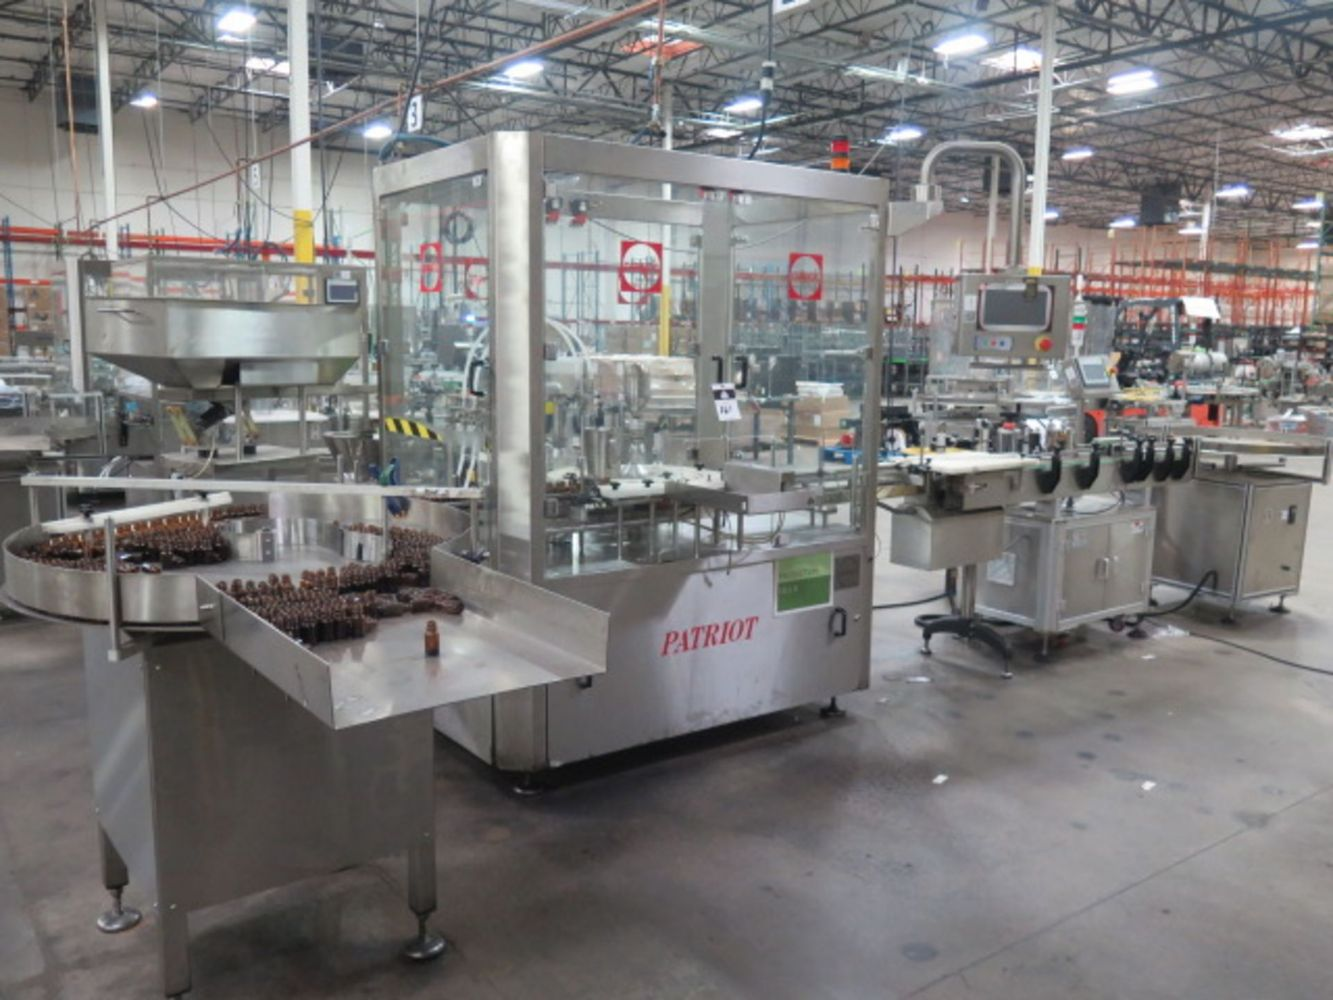 State of the Art Essential Oils MFG & Bottling / Lab Facility Over $3,000,000 in Raw Materials & Glass Bottles